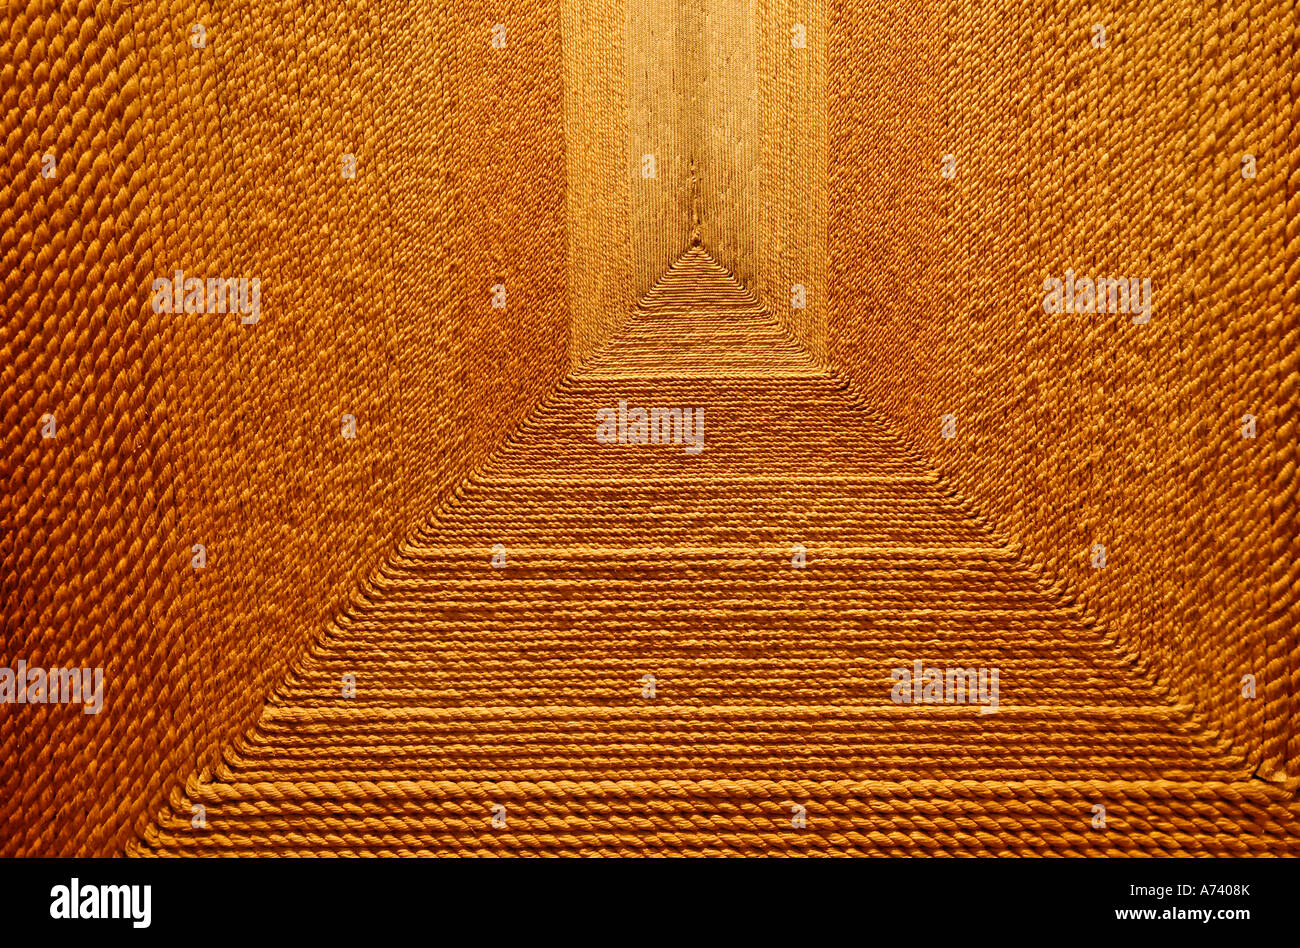 carpet made of sisal Museo Nacional de Antropologia National Museum of Anthropology Mexico City Mexico Stock Photo